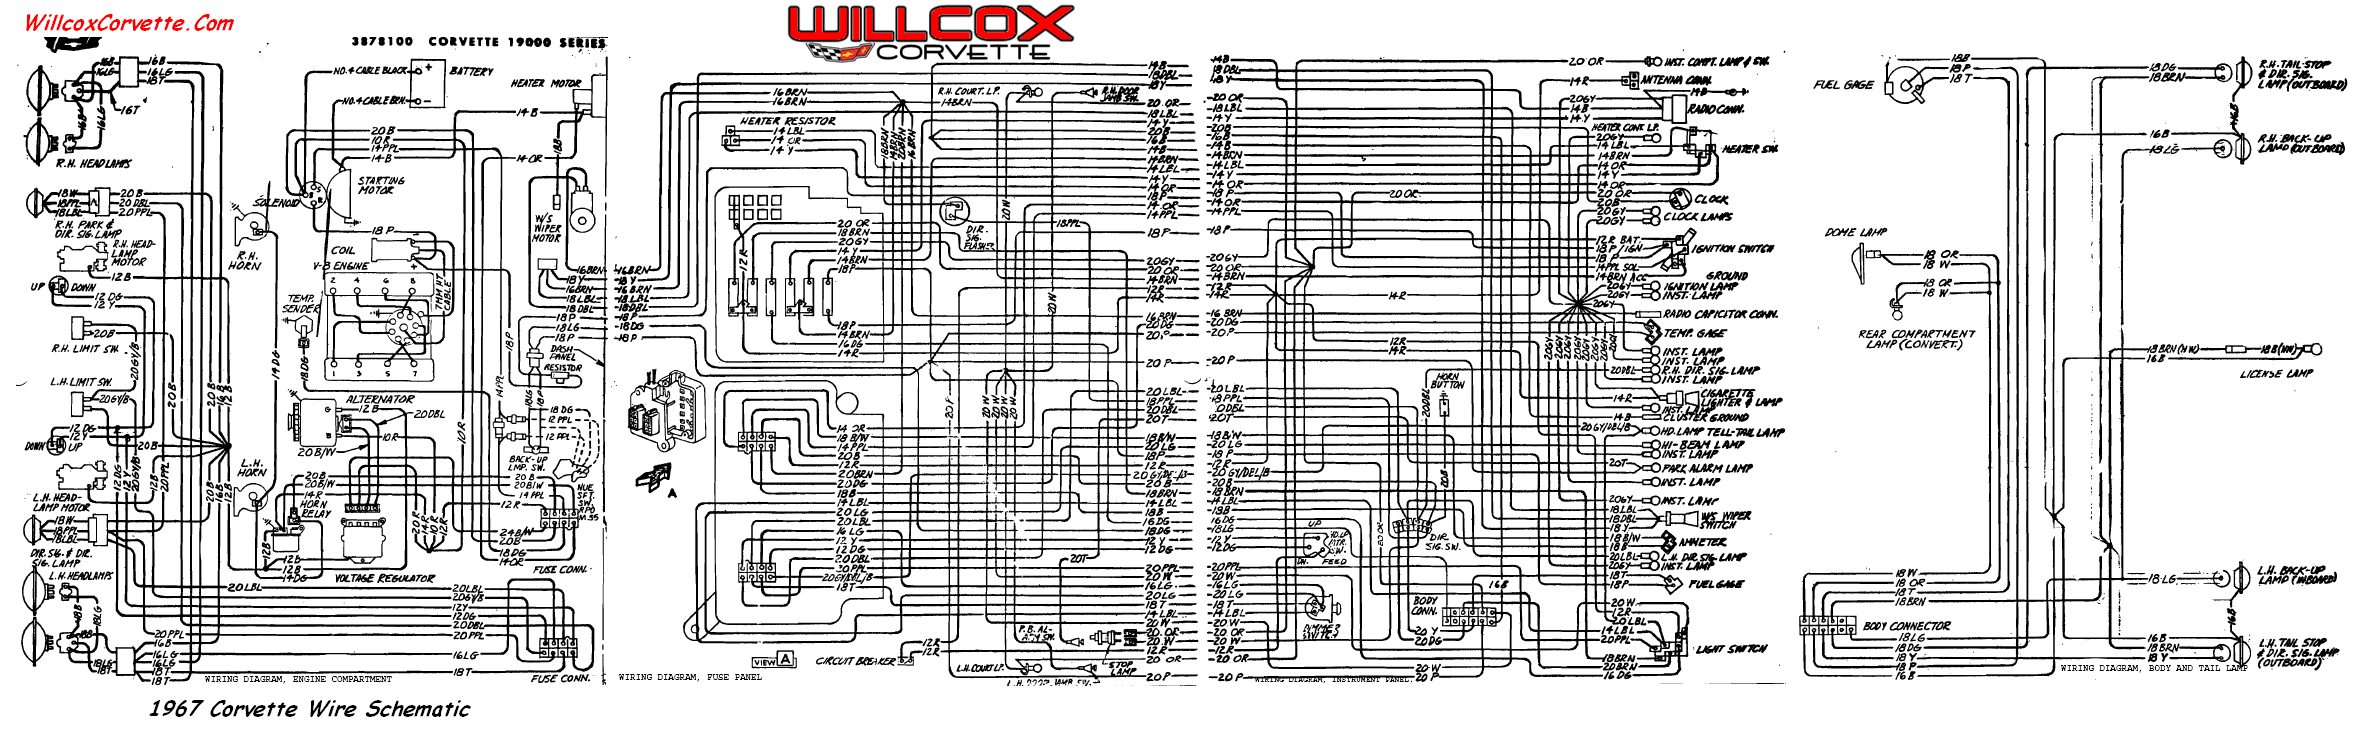 1966 corvette wiring diagram corvette wiring diagram corvette wiring diagrams online 1967 corvette wiring diagram tracer schematic willcox corvette